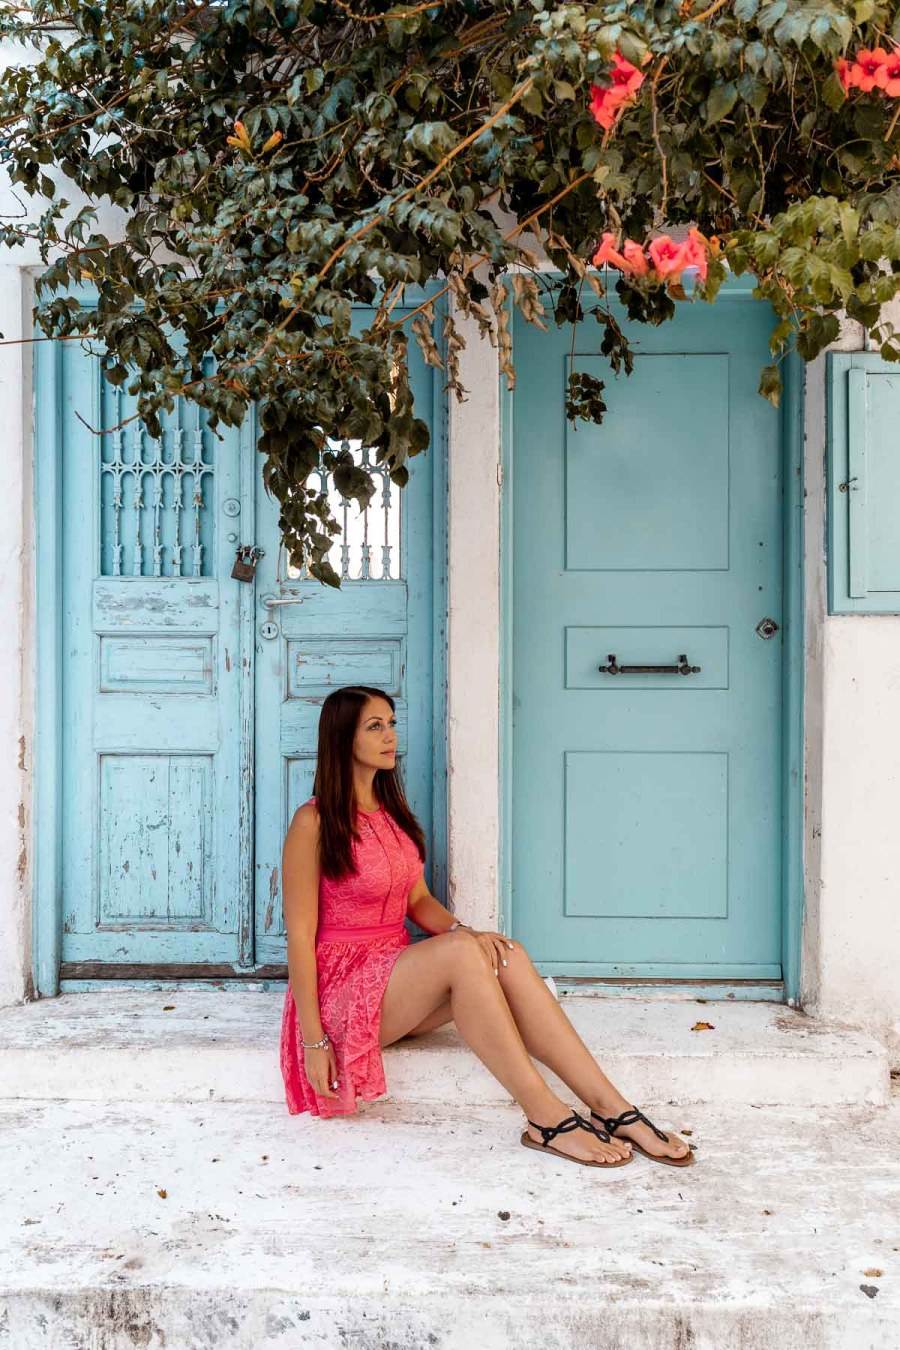 Girl in a pink dress sitting in front of a turquoise door in Mykonos